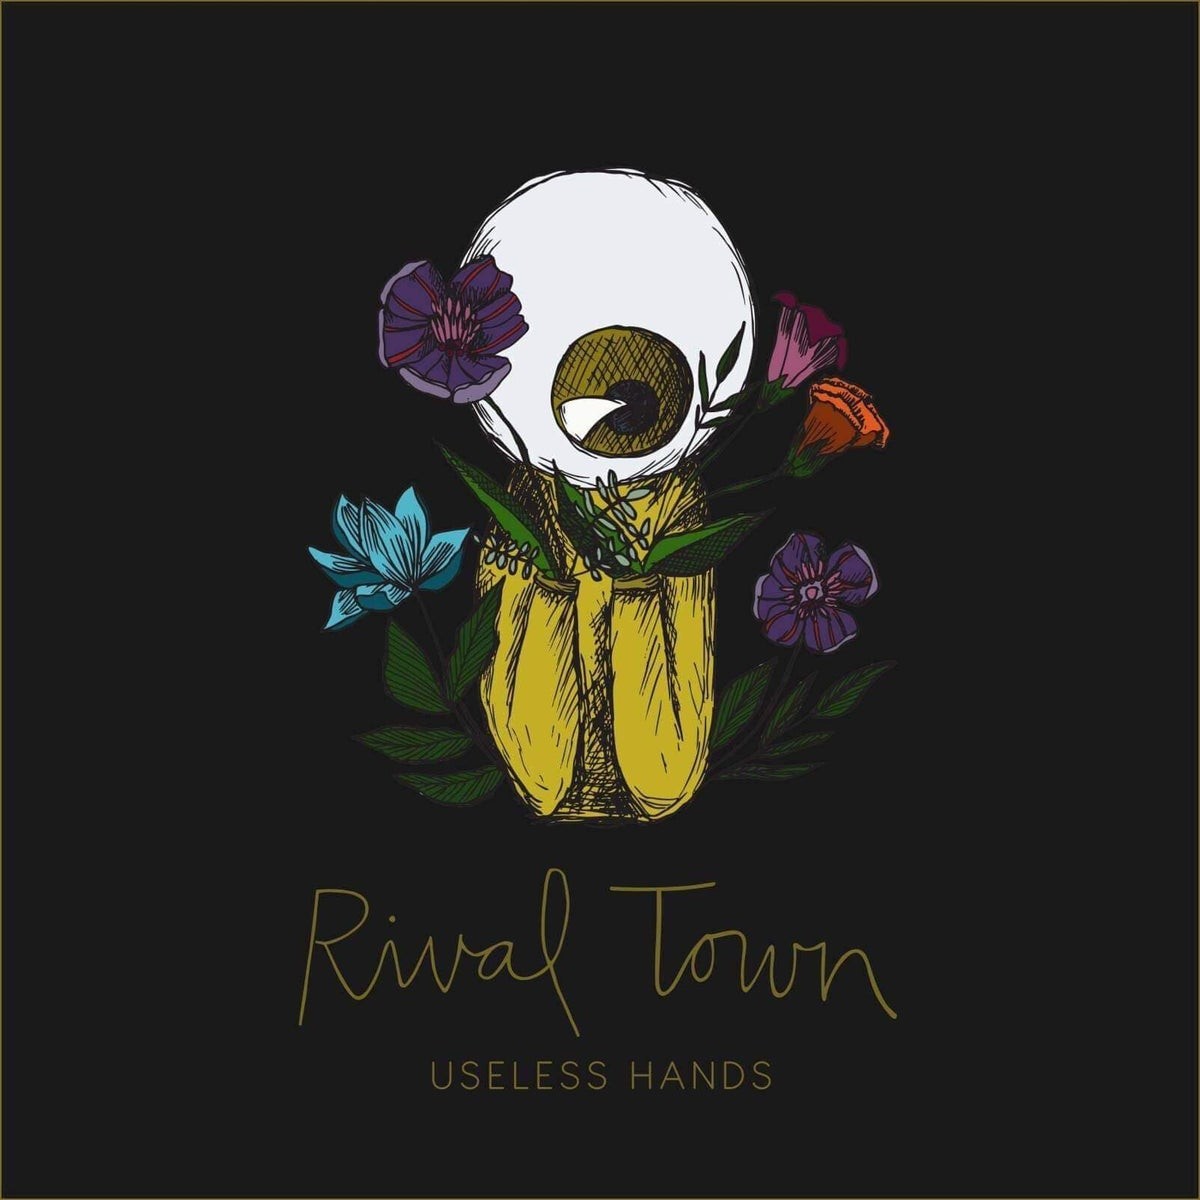 Image of Useless Hands Album (2019)